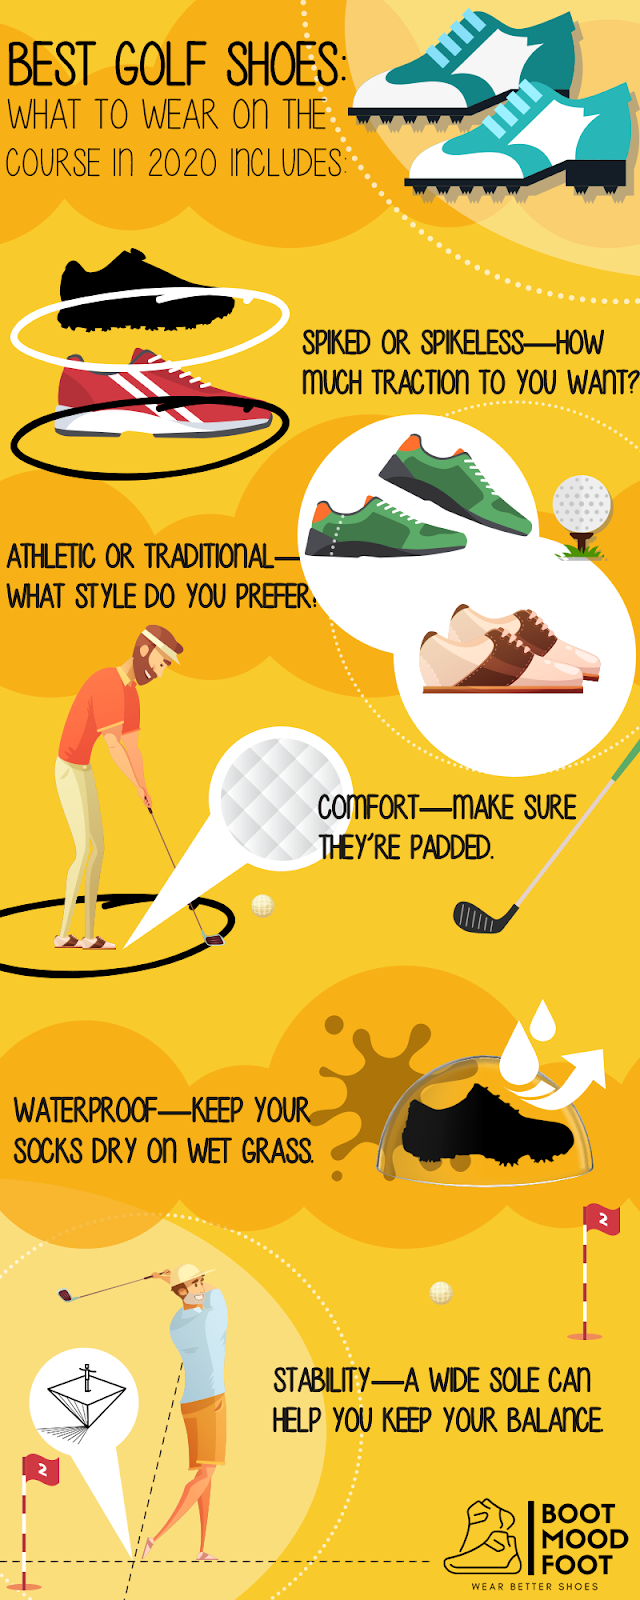 Best Golf Shoes,What to wear on the course